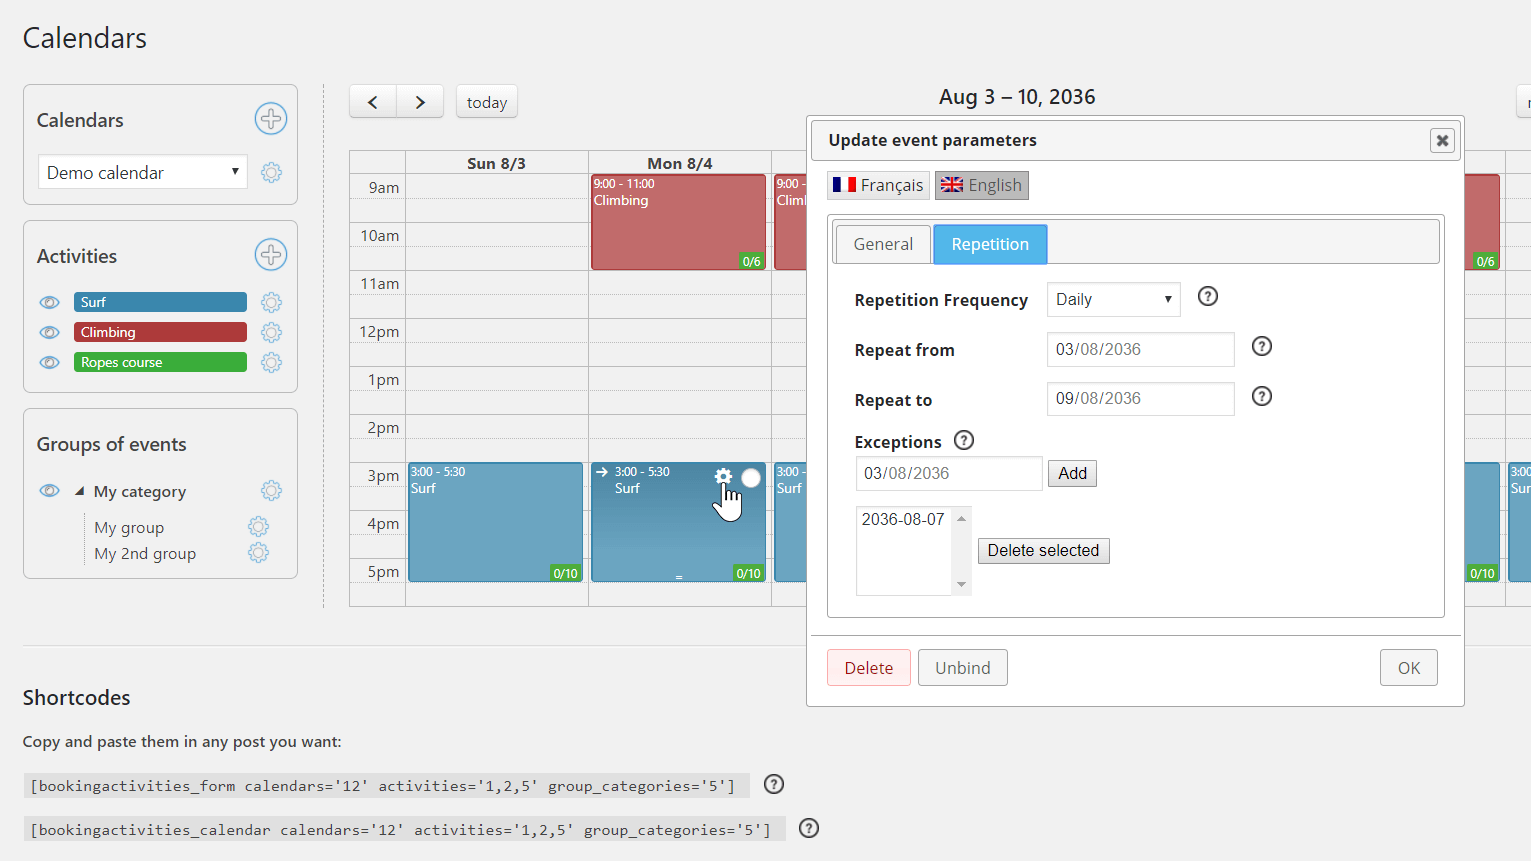 Create daily, weekly or monthly repeated events. You can add exception dates to the repetition.